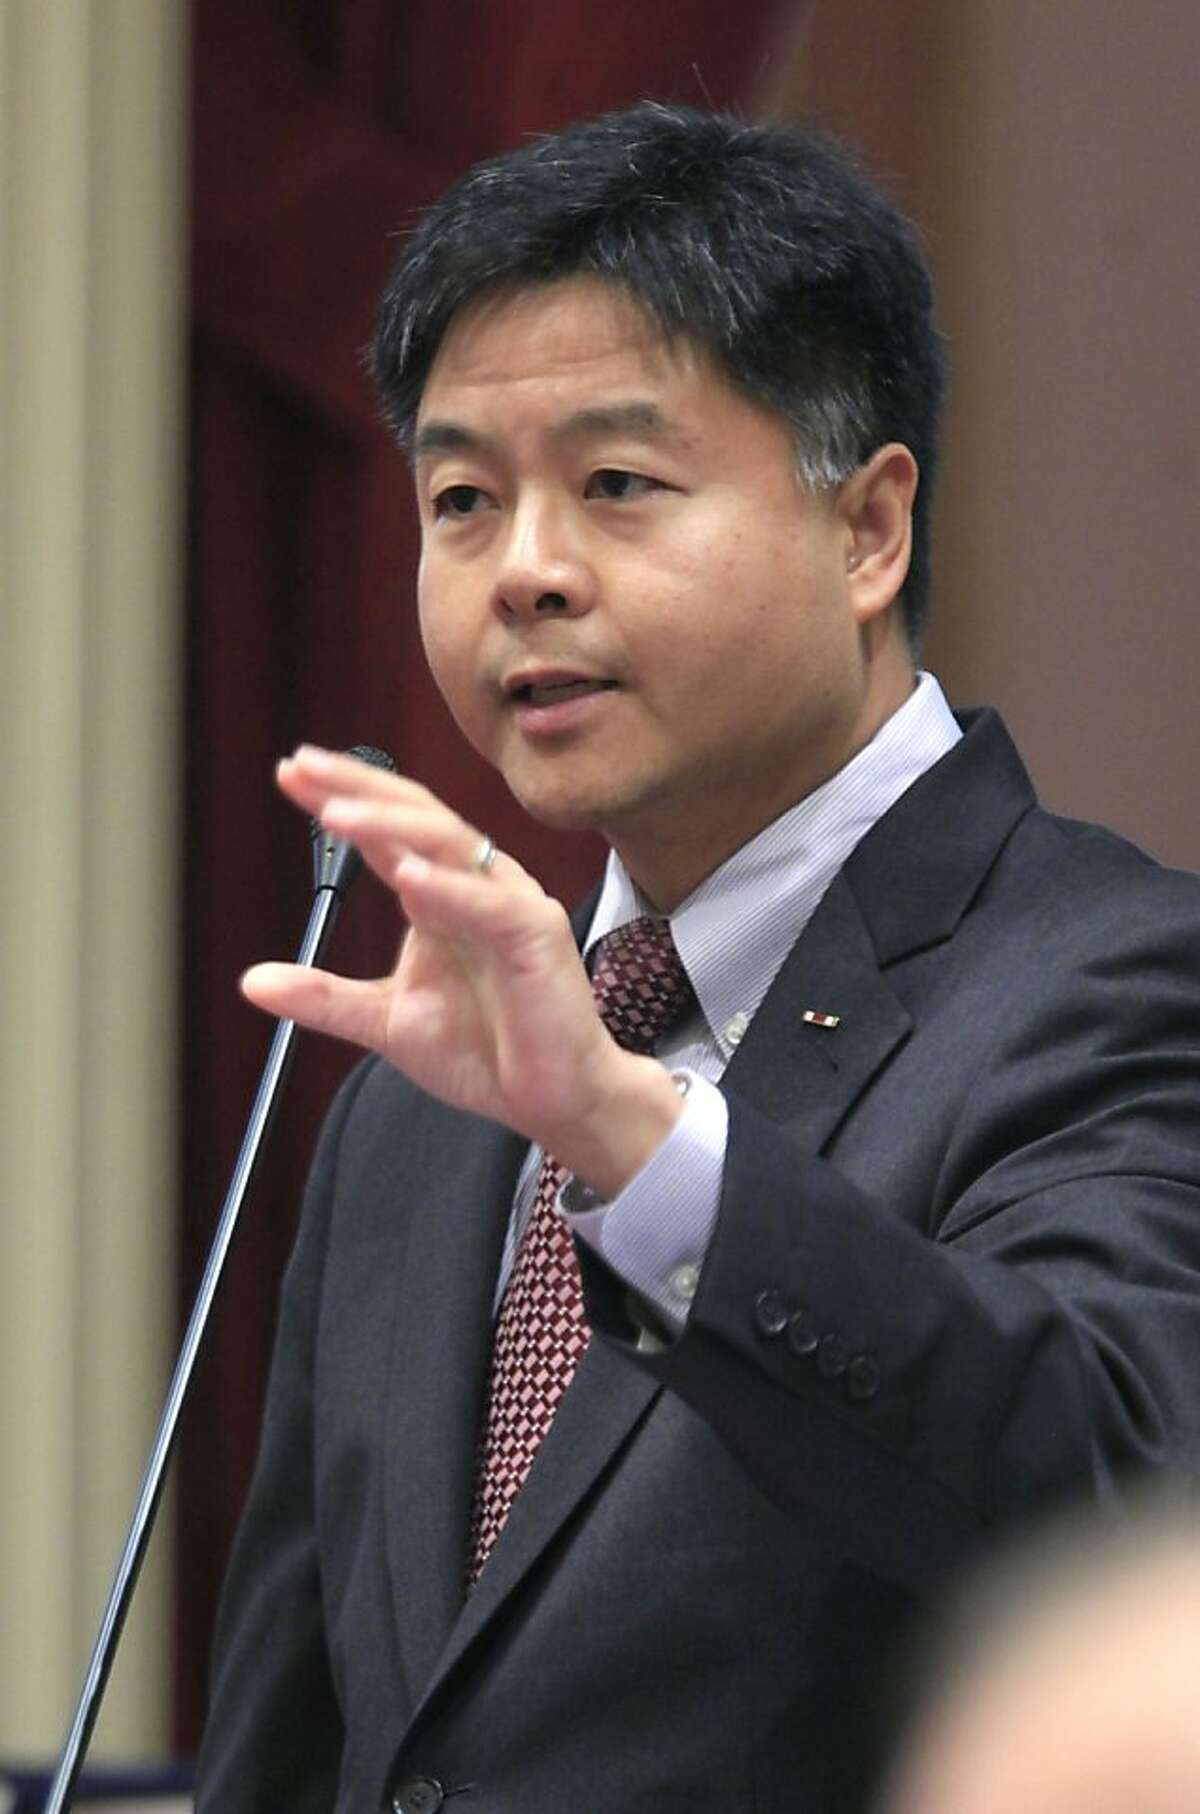 FILE- This file photo taken Sept. 9, 2011, shows California State Sen. Ted Lieu , D-Torrance , as he speaks before the Senate at the Capitol in Sacramento, Calif. Lieu is considering calling for a boycott of Lowe's stores after the home improvement chain pulled its advertising from a reality show about Muslim-Americans. Calling the retail giant's decision